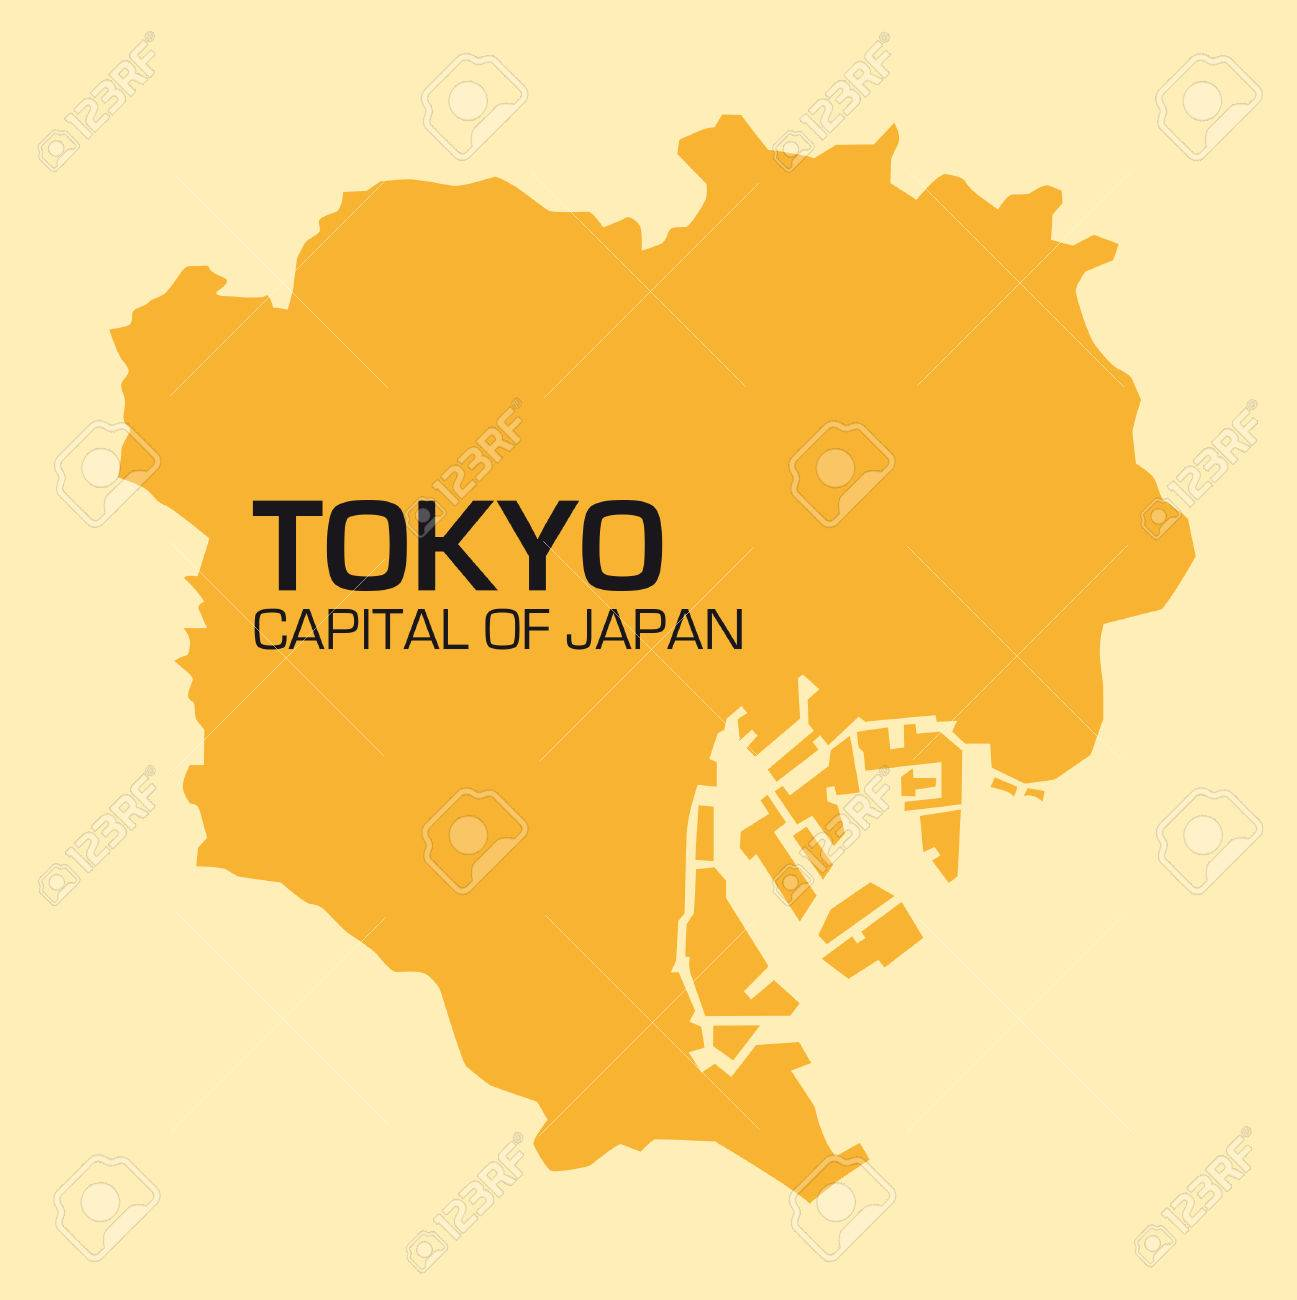 Simple Outline Map Of The Japanese Capital Tokyo Royalty Free